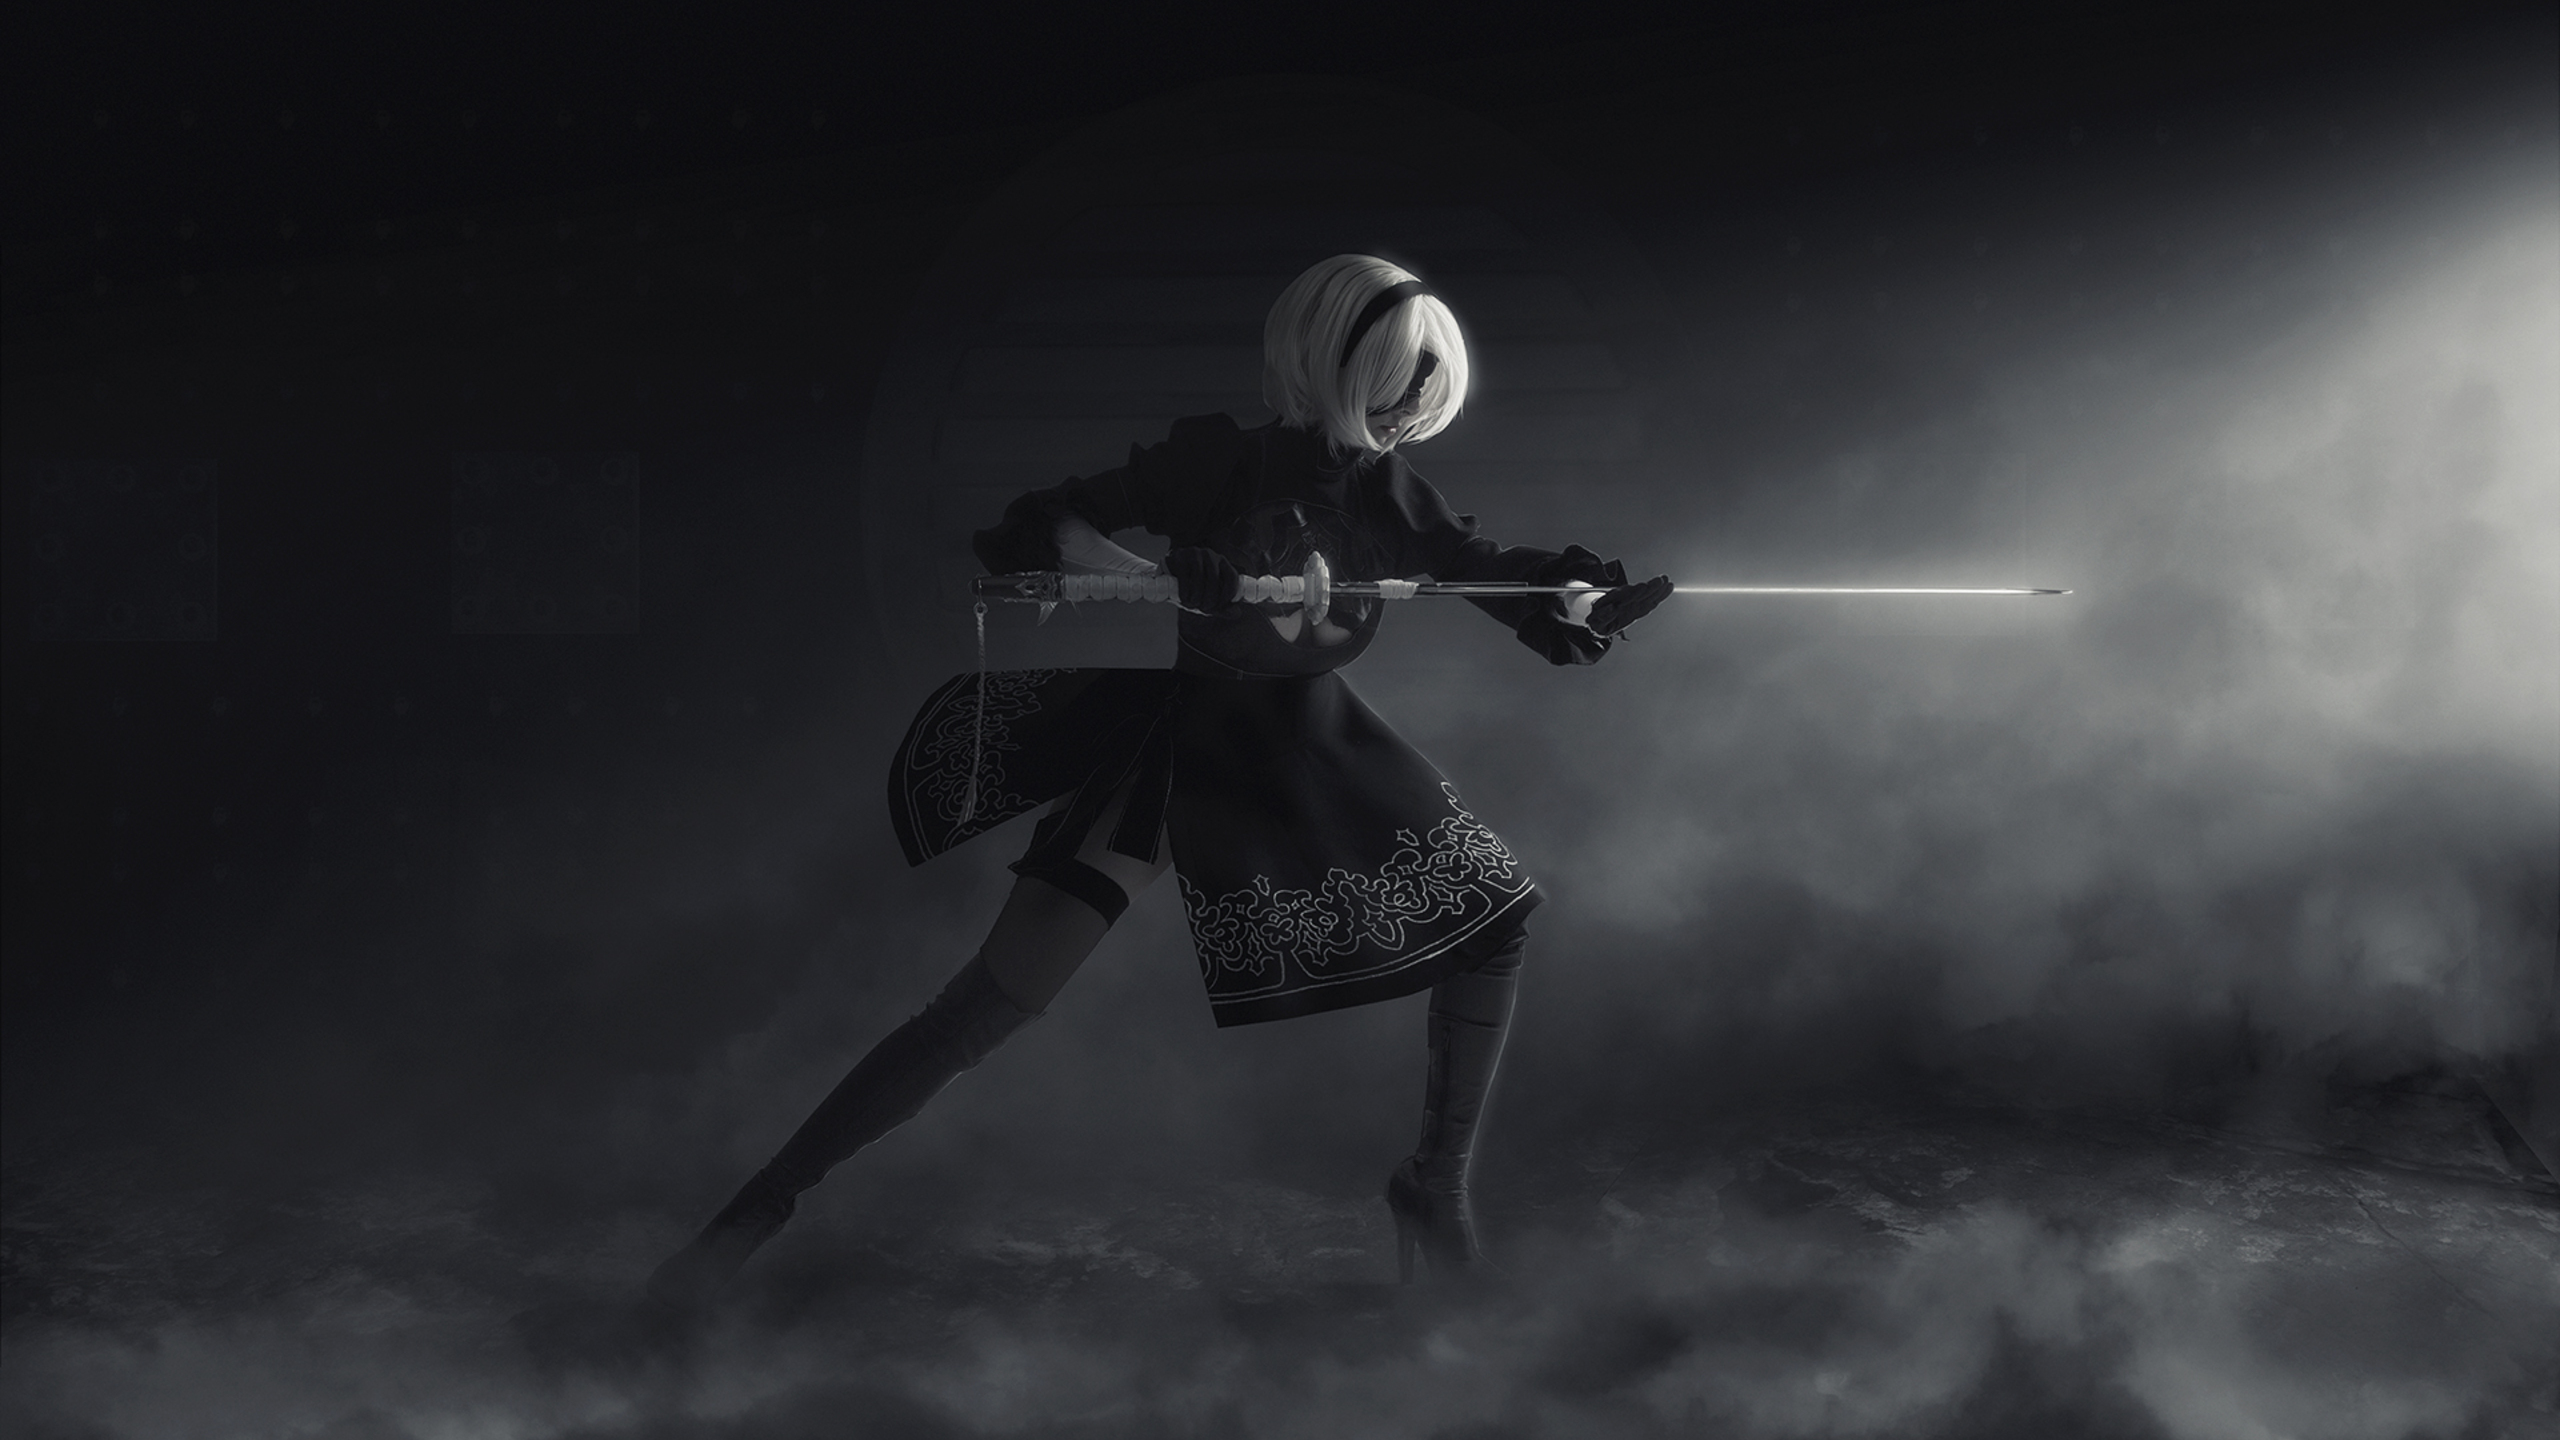 Nier Automata Wallpapers Or Desktop Backgrounds: 2560x1440 Nier Automata Cosplay 1440P Resolution HD 4k